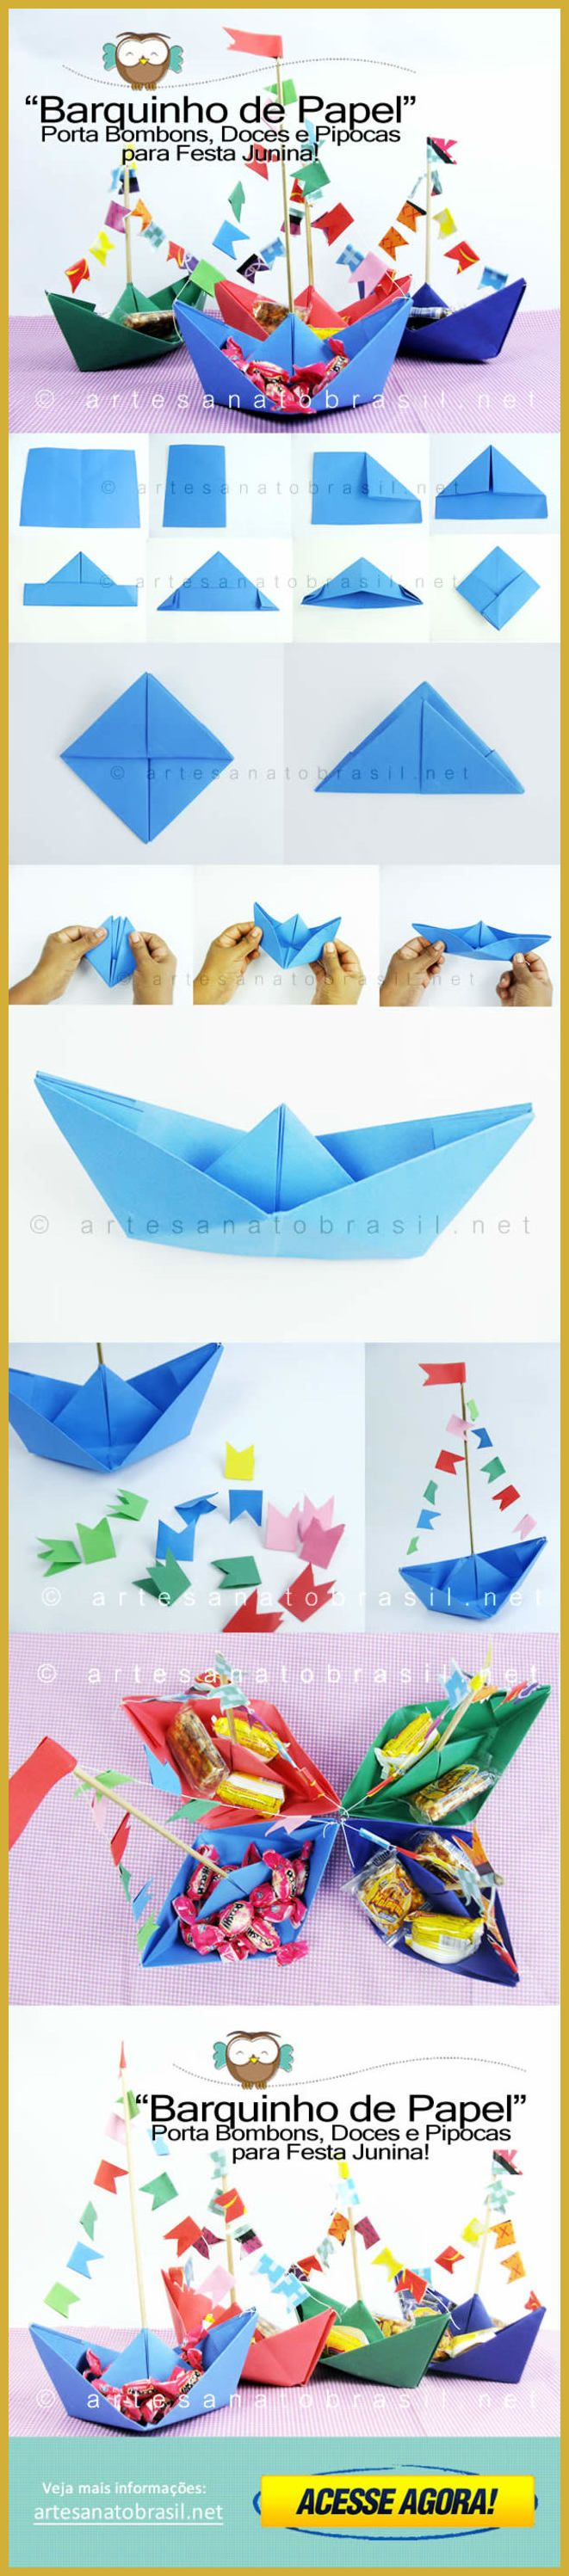 31 Best Origami Flower Images On Pinterest Christmas Star Tavin39s The Beautiful Works Of 3d Want To Know More